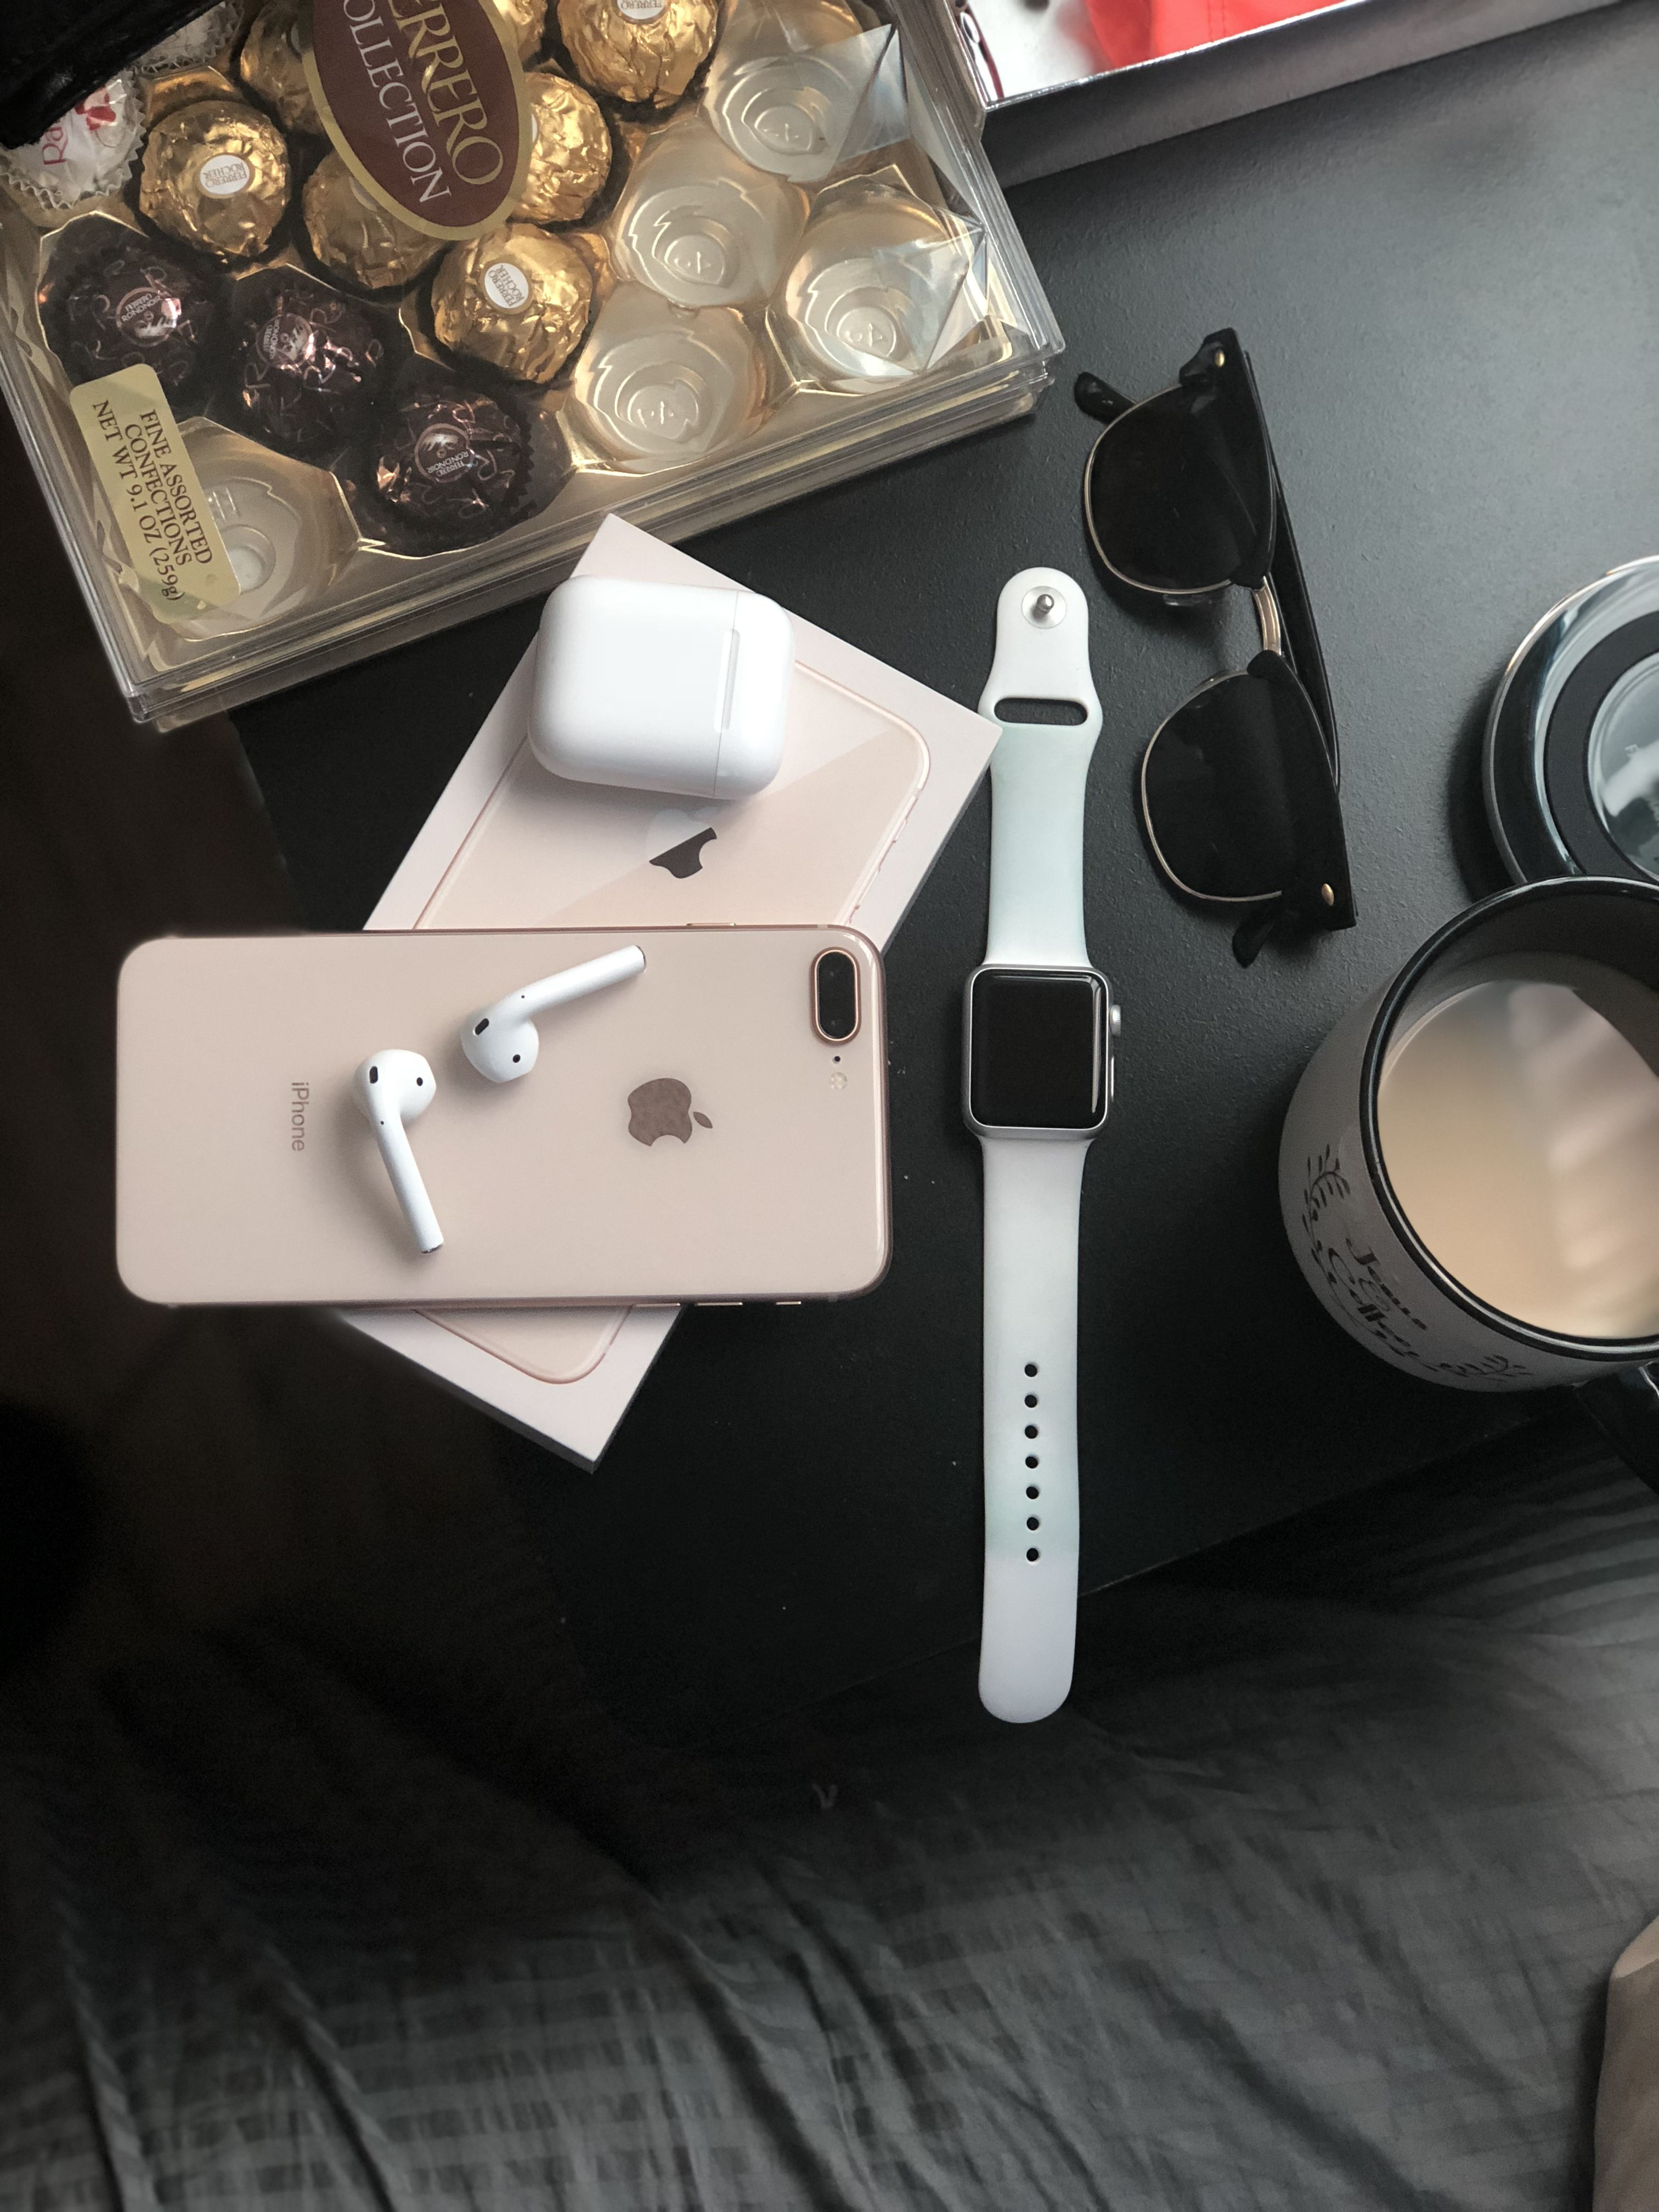 Iphone 8 Plus And Airpod Apple Watch Series 1 38mm Apple Iphone Accessories Apple Watch Iphone Apple Products